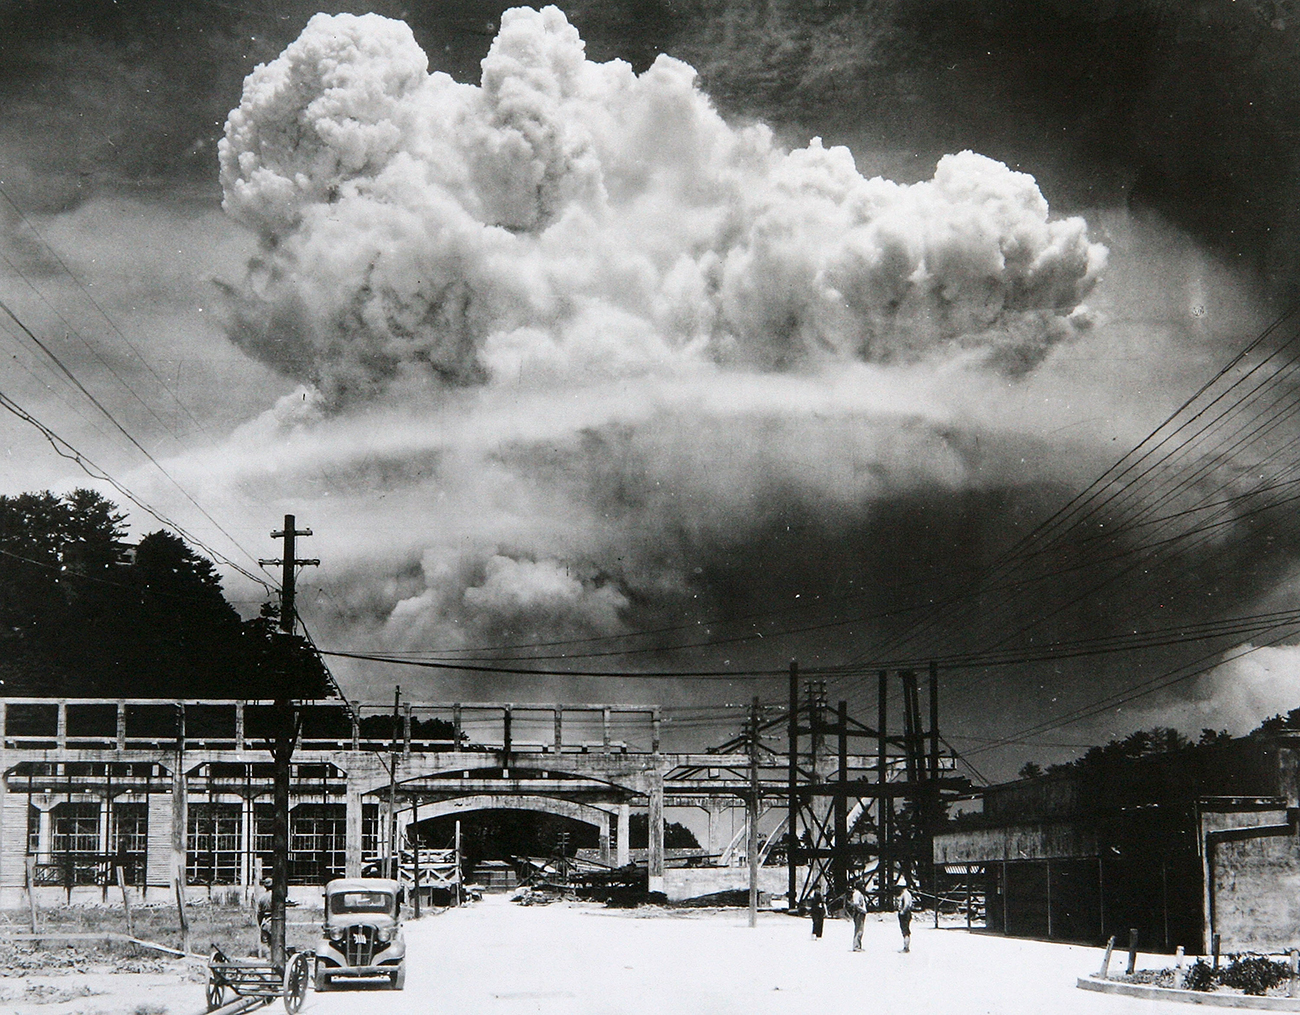 View of the radioactive plume from the bomb dropped on Nagasaki City, as seen from 9.6 km away, in Koyagi-jima, Japan, August 9, 1945. The US B-29 superfortress Bockscar dropped the atomic bomb nicknamed 'Fat Man,' which detonated above the ground, on northern part of Nagasaki City just after 11am.